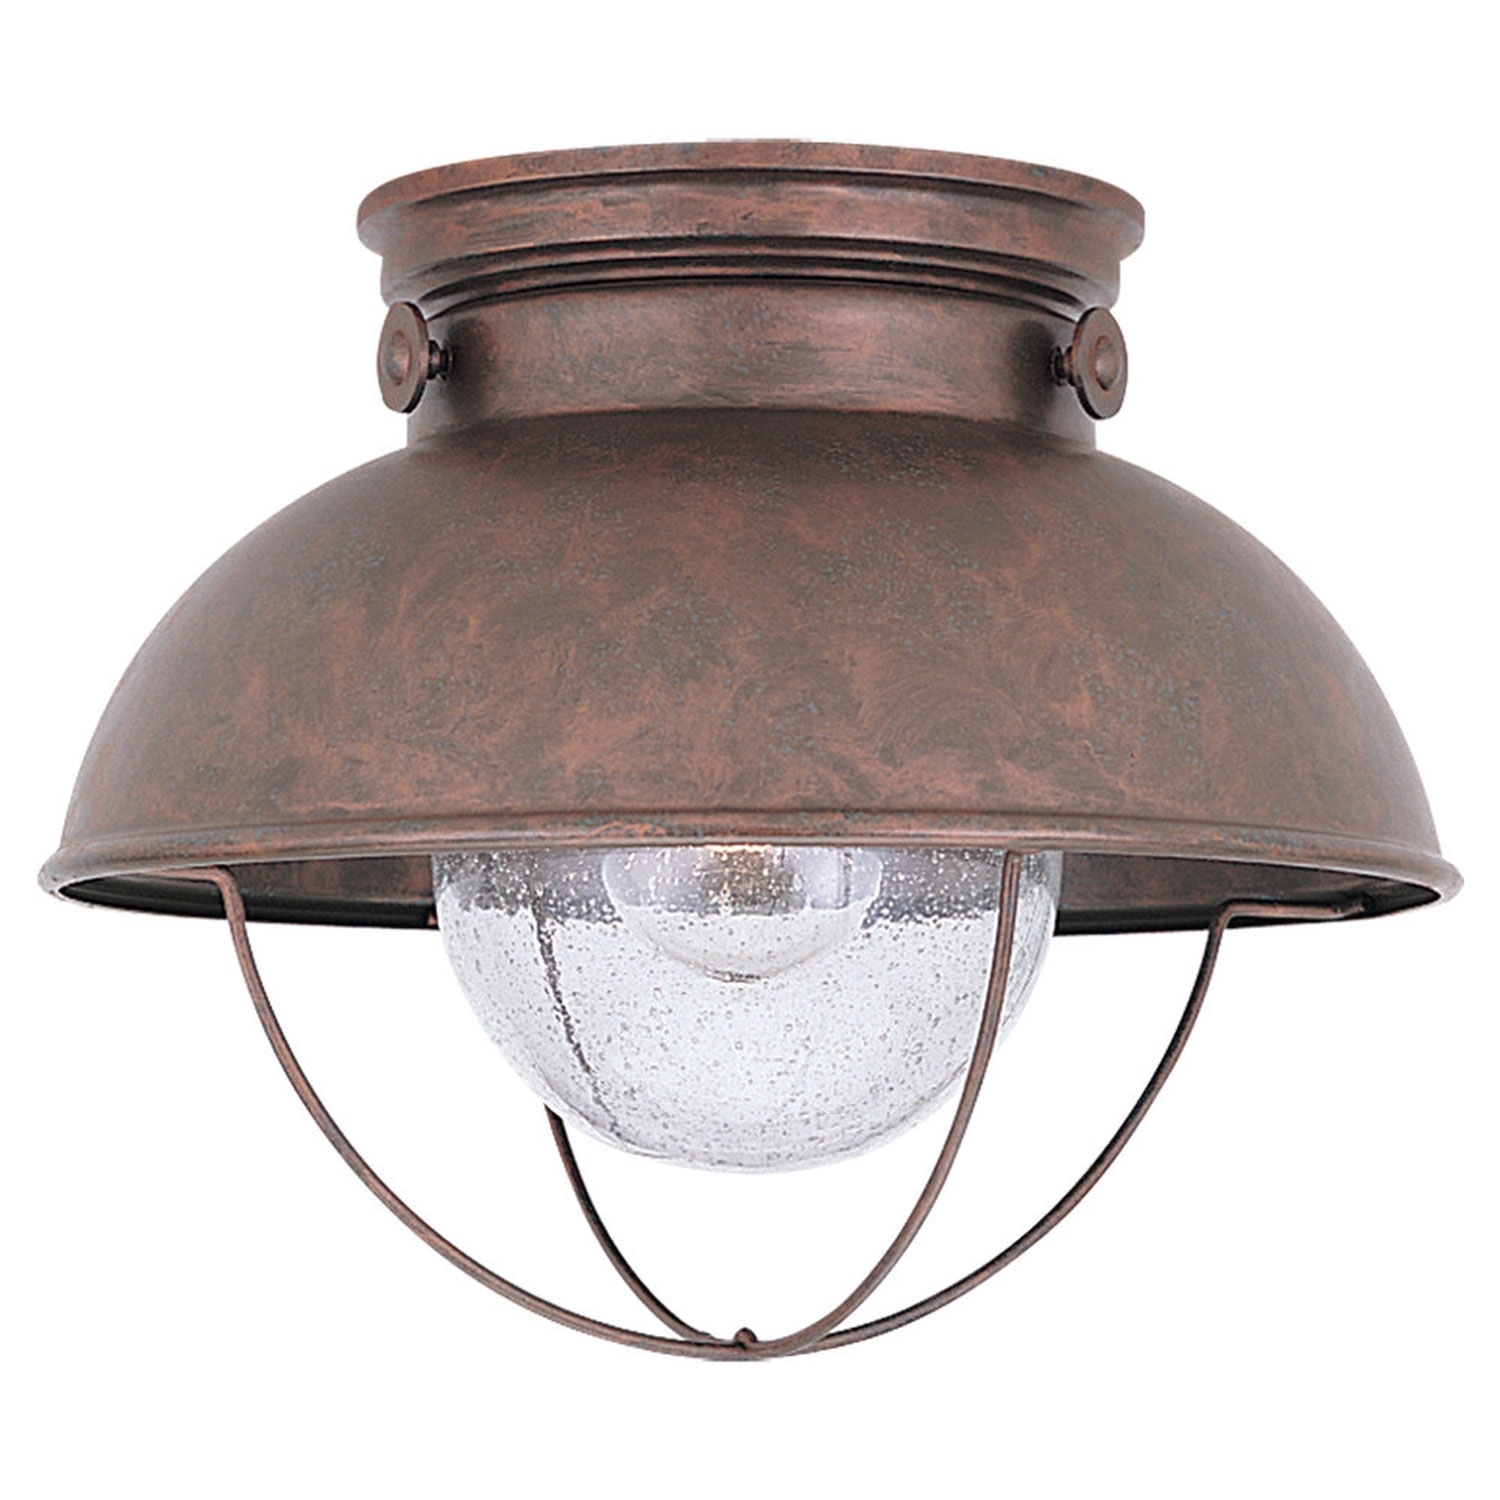 Popular Photo of Round Outdoor Ceiling Lights